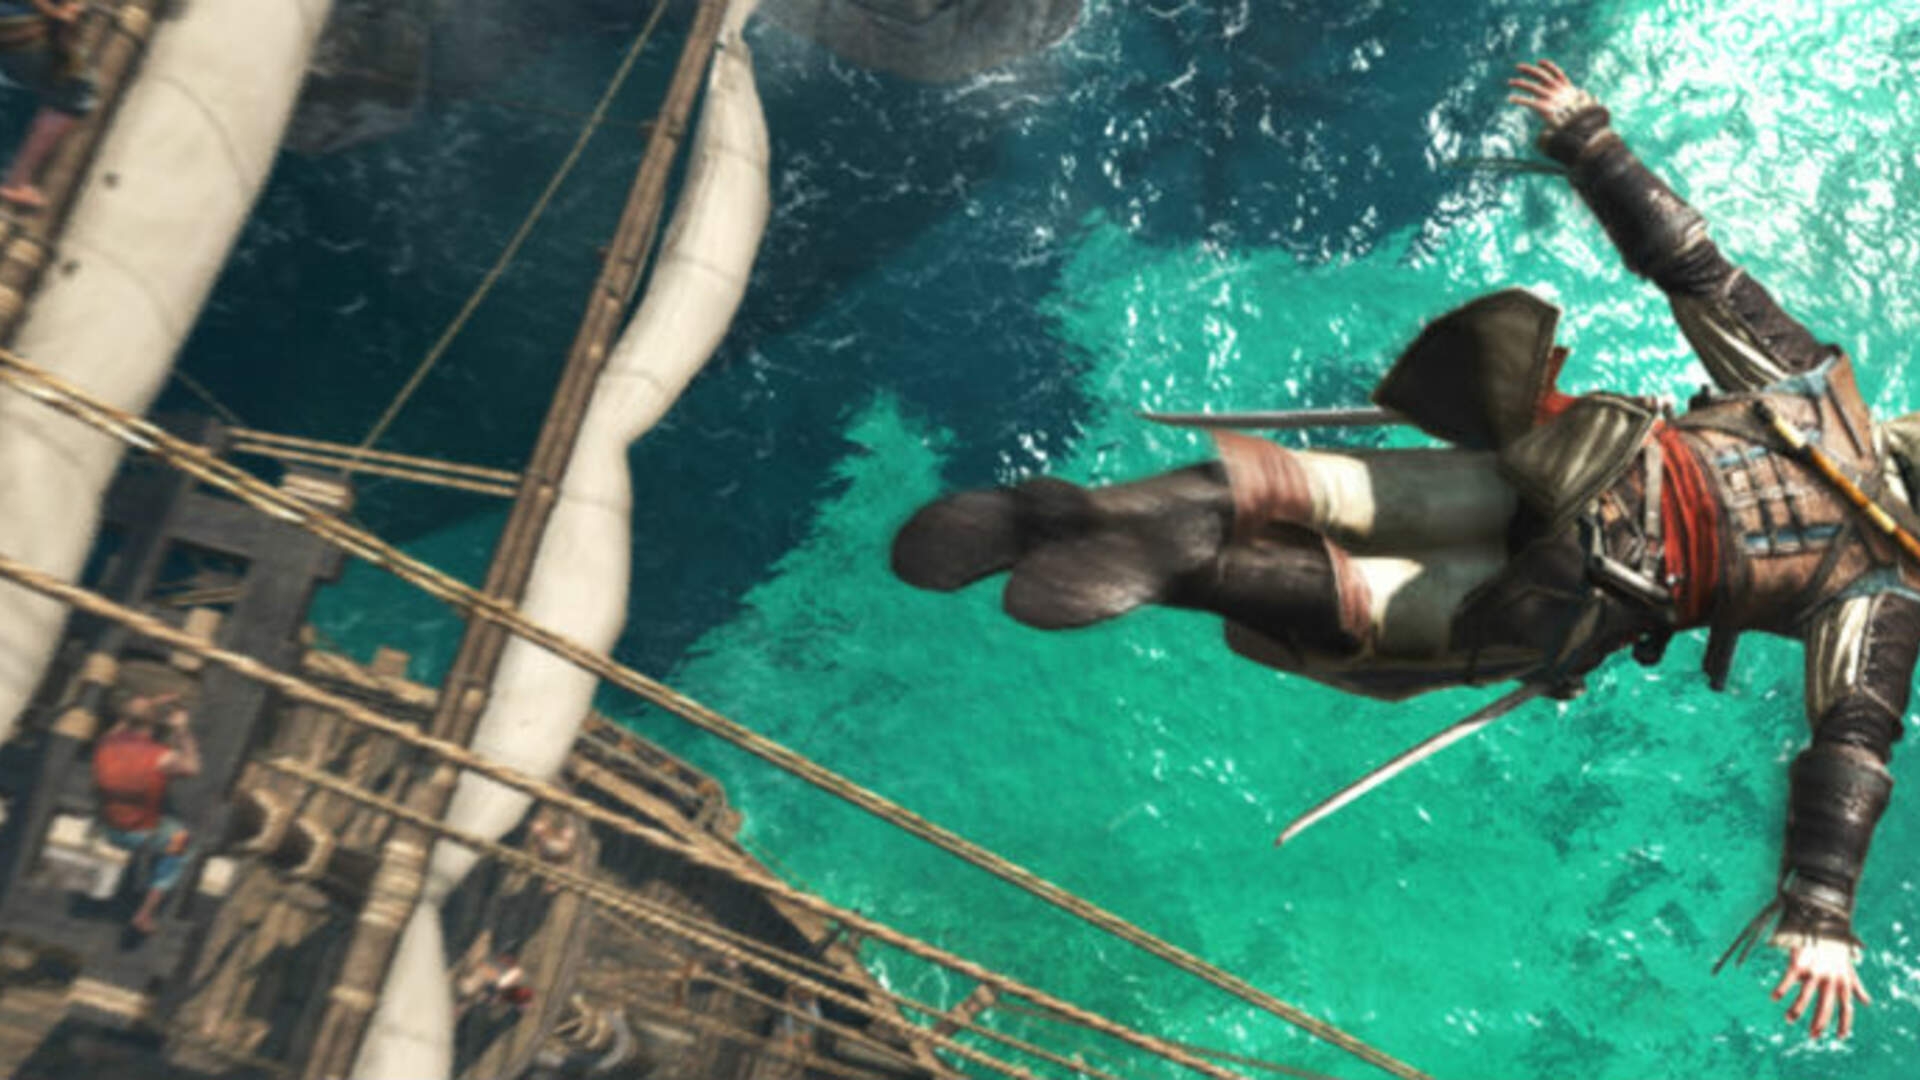 Assassin's Creed 4: Black Flag PS3 Review: Better Than AC3?